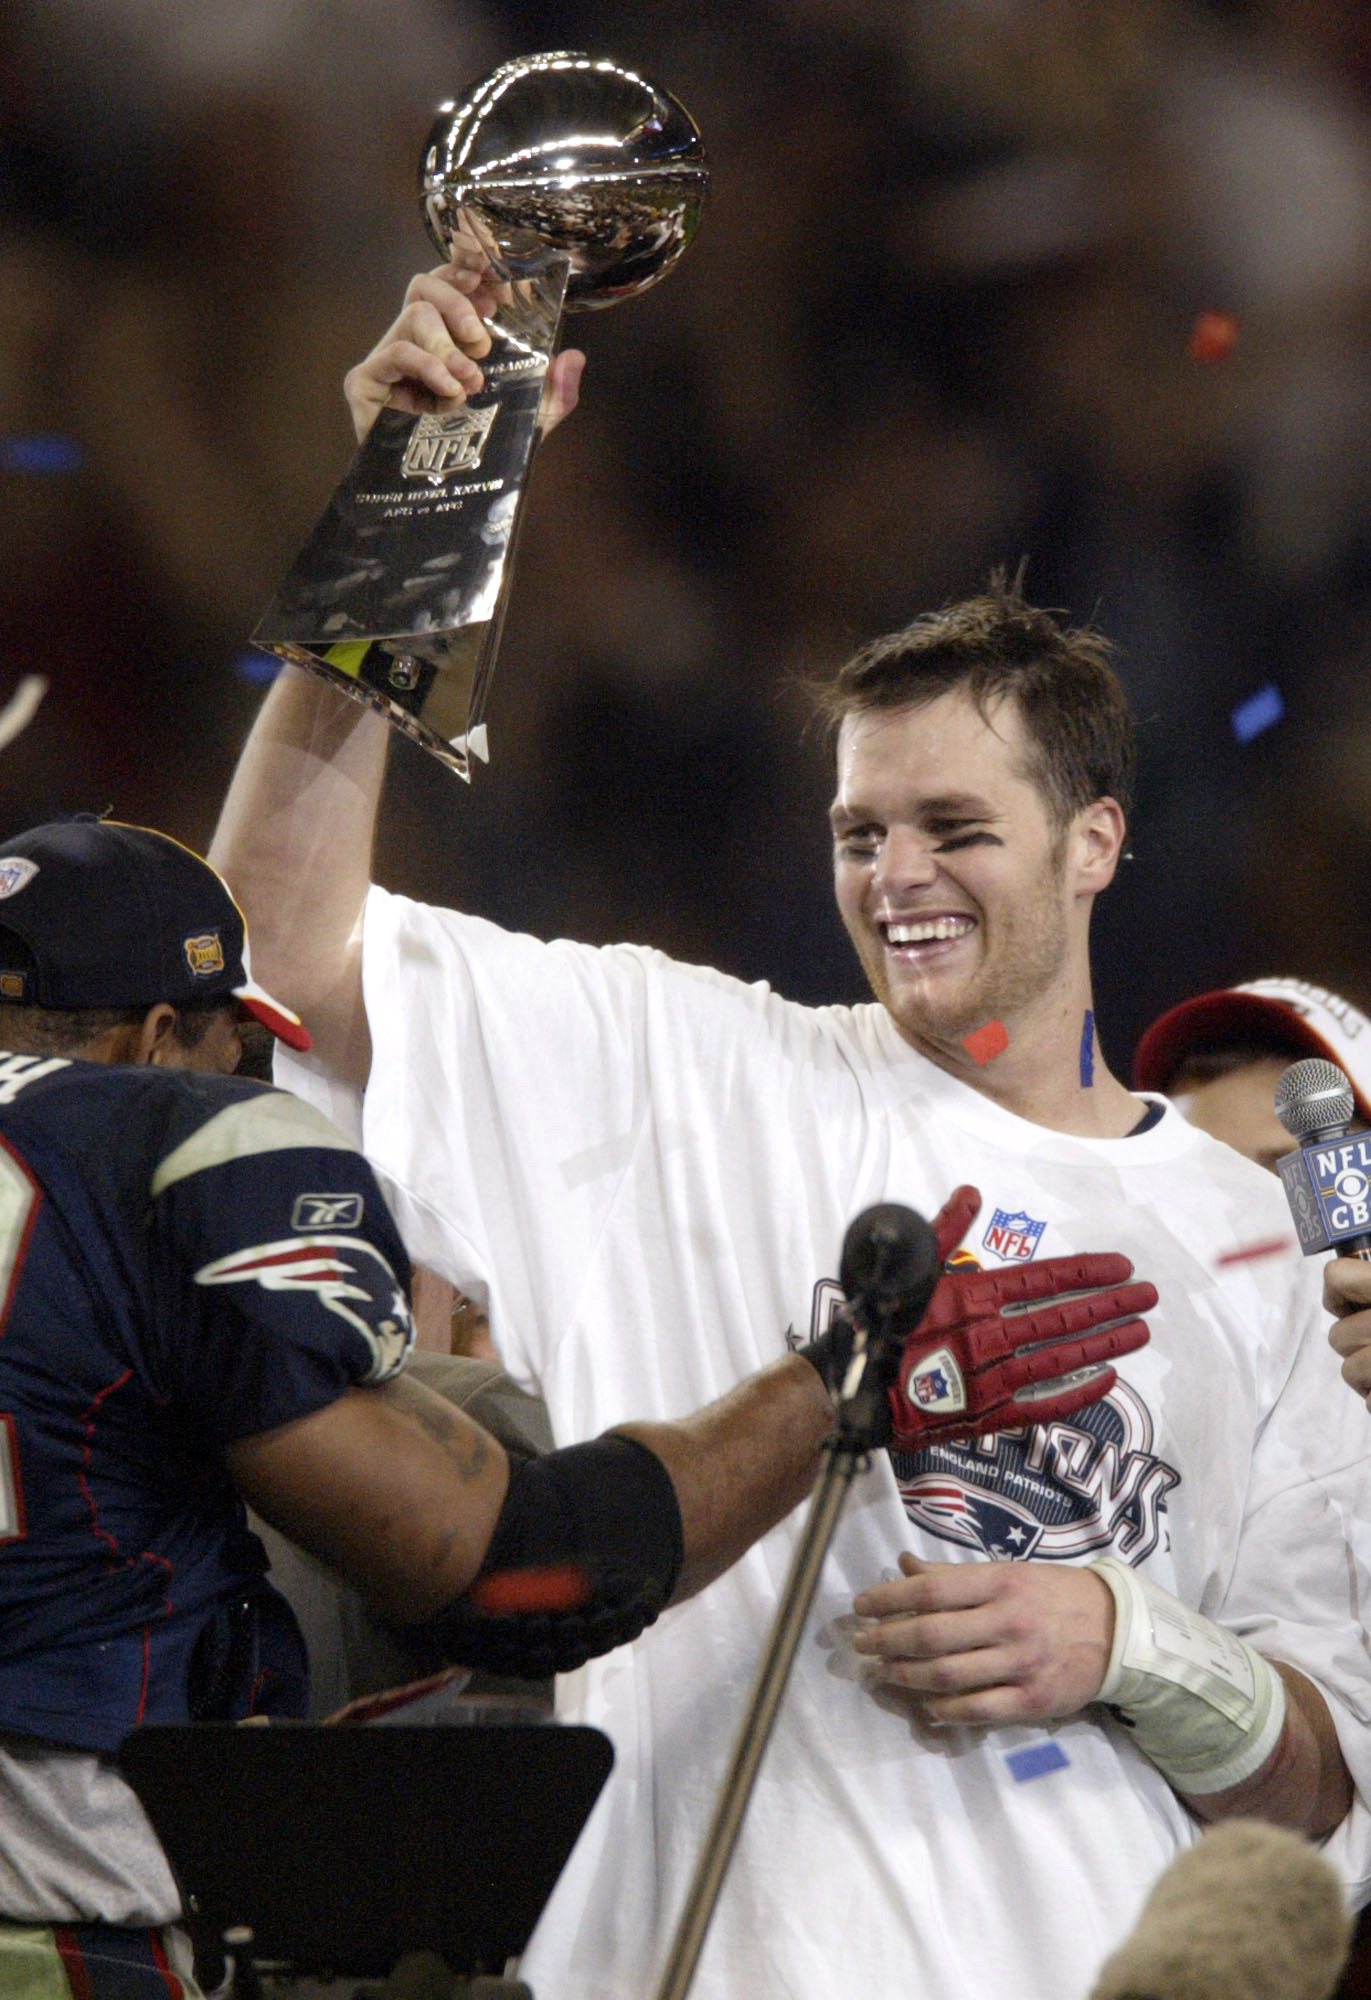 FILE - In this Feb. 1, 2004, file photo, New England Patriots quarterback Tom Brady, right, celebrates with the Vince Lombardi trophy after the Patriots defeated the Carolina Panthers 32-29 in NFL football's Super Bowl XXXVIII in Houston. Brady grew from